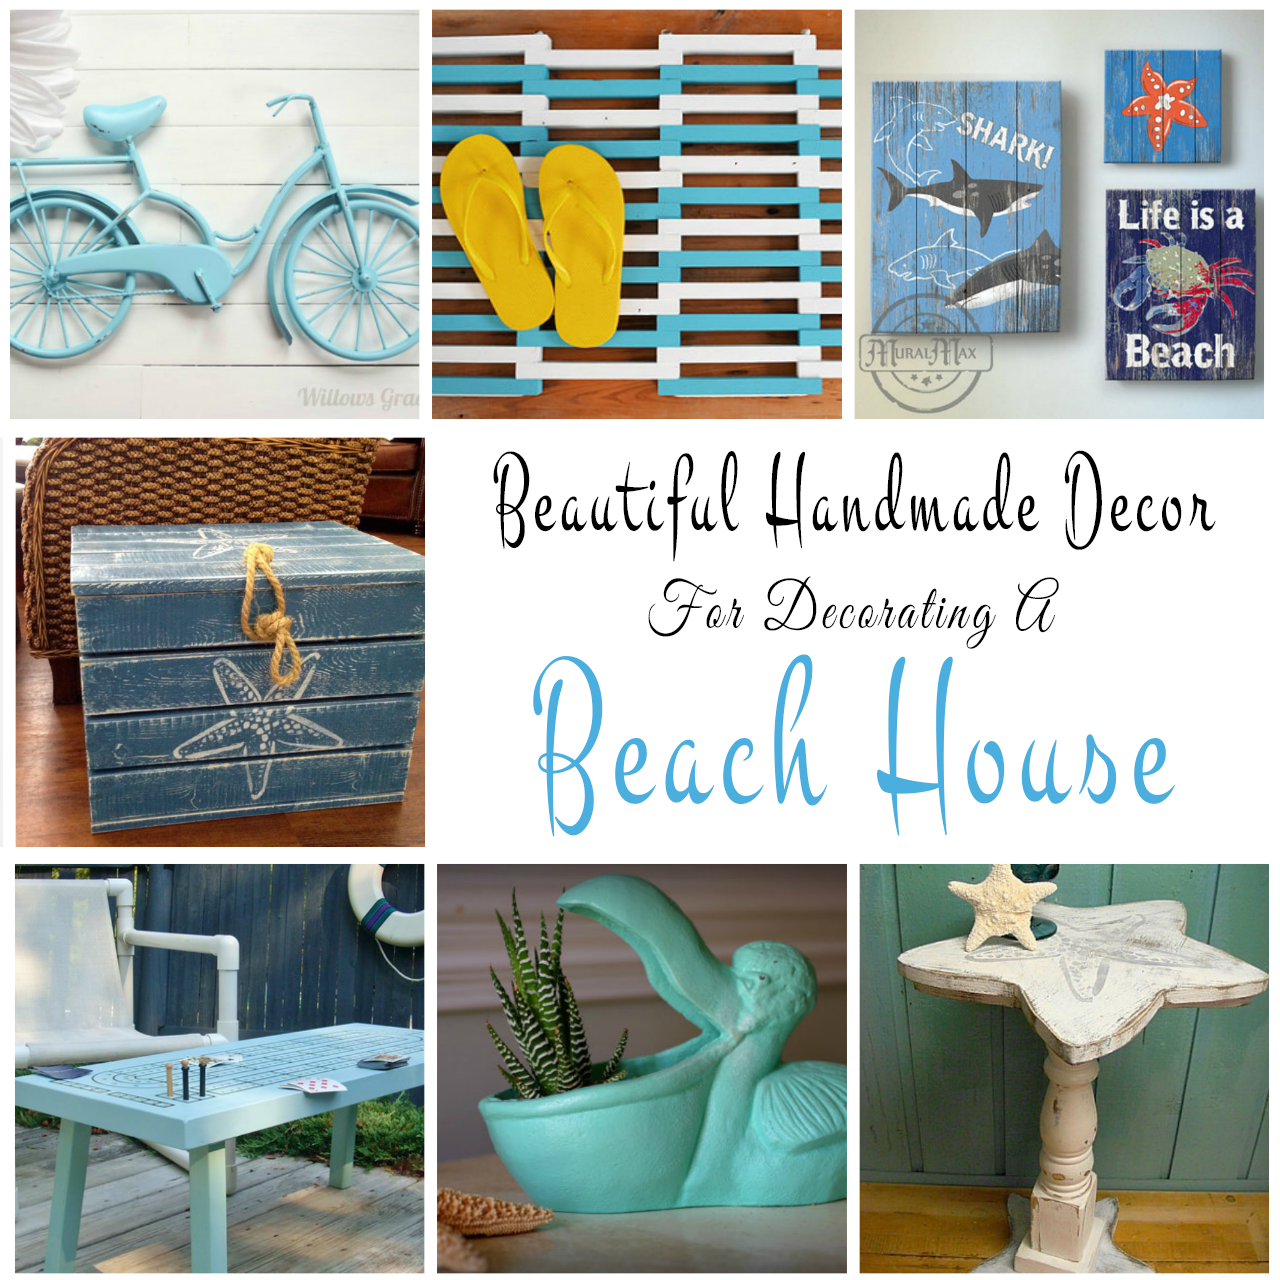 Decorating Beach House Ideas